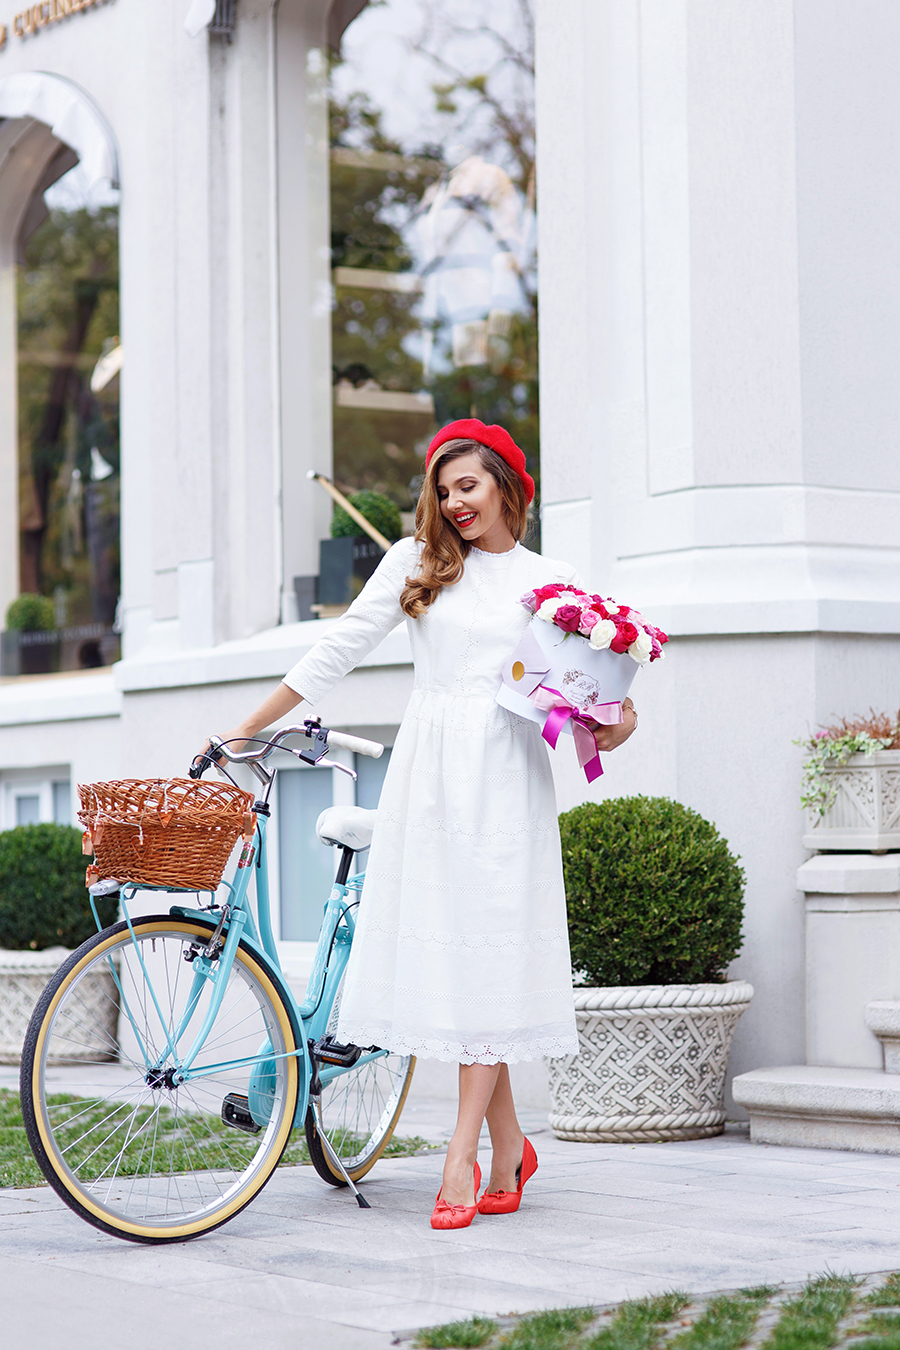 larisa costea, larisa costea blog, the mysterious girl, the mysterious girl blog, fashion blog, blogger, fashion, fashionista, it girl, travel blog, travel, traveler, ootd, lotd, outfit inspiration,look of the day,outfit of the day,what to wear, dainty,dainty jewells, white dress,midi dress,eyelet dress,lace dress, red flats, ballerinas, red beret, royal roses, roses box, bicitalia,bike, blue bike, chic look,parisian chic,french chic,henry london,henry watch